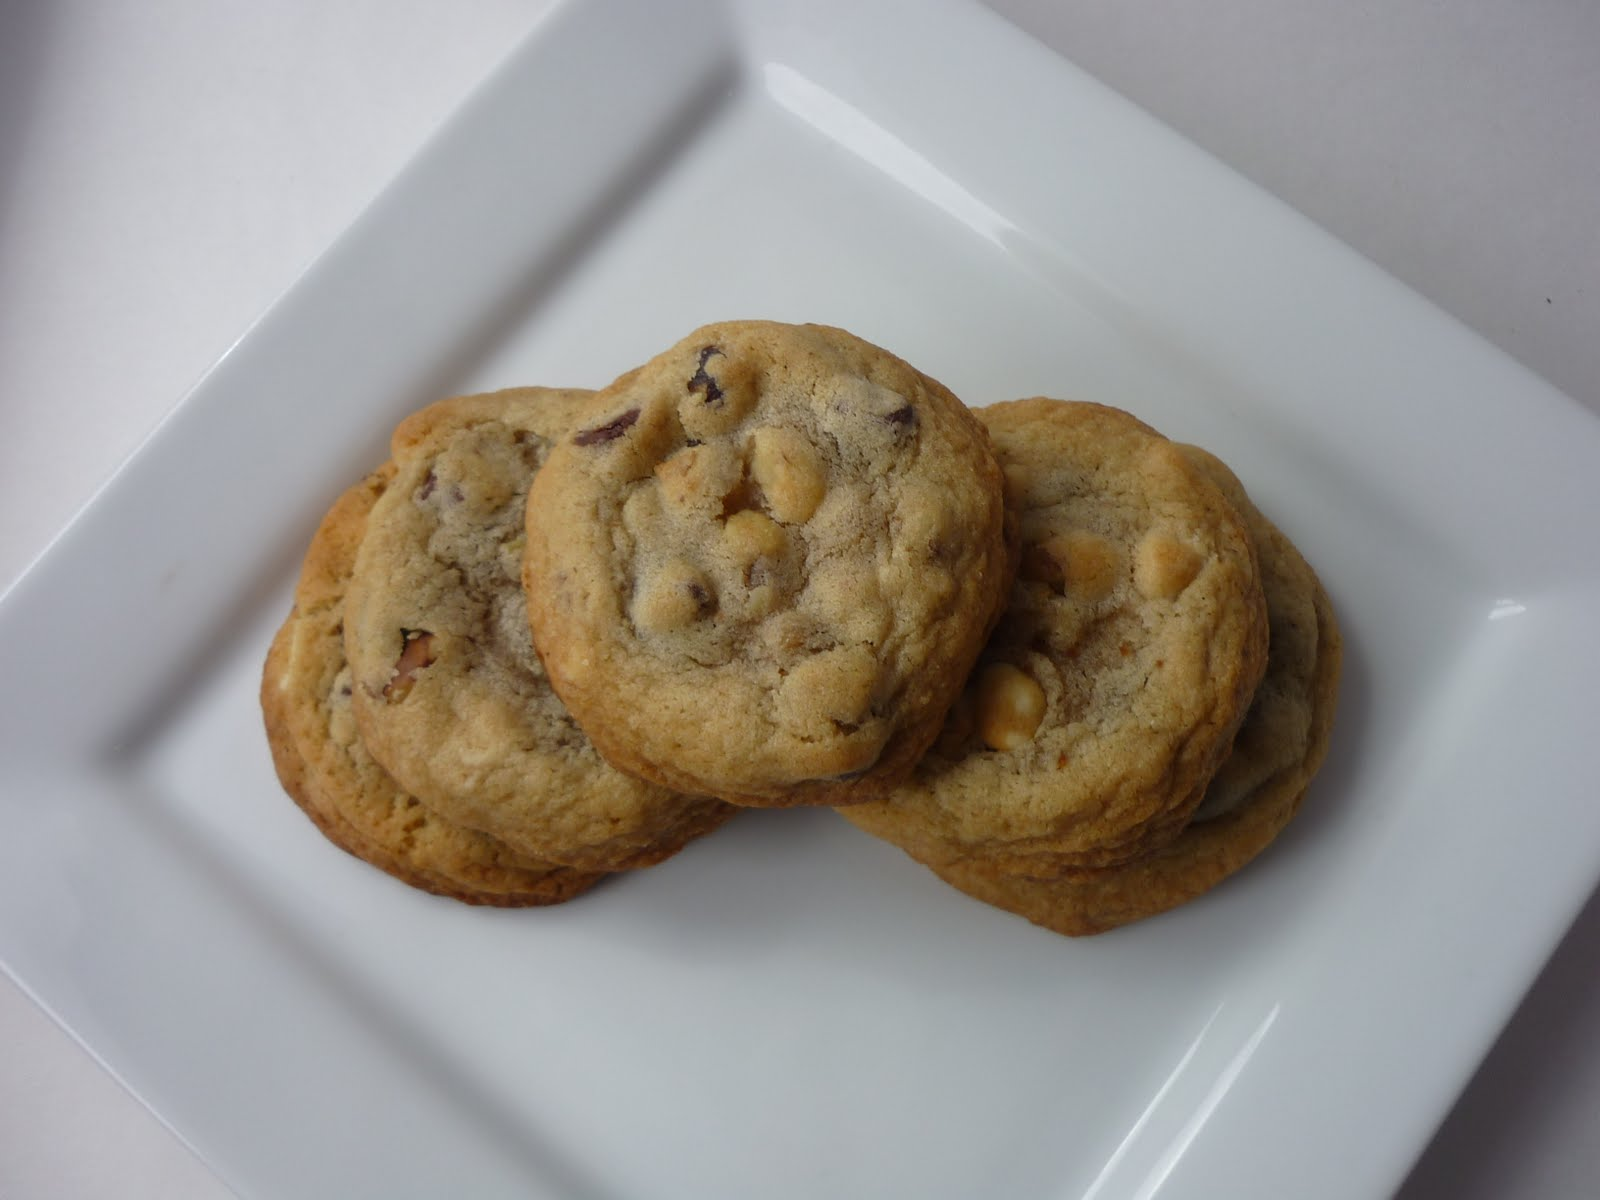 All Betz Off: Original Nestle Toll House Chocolate Chip Cookies